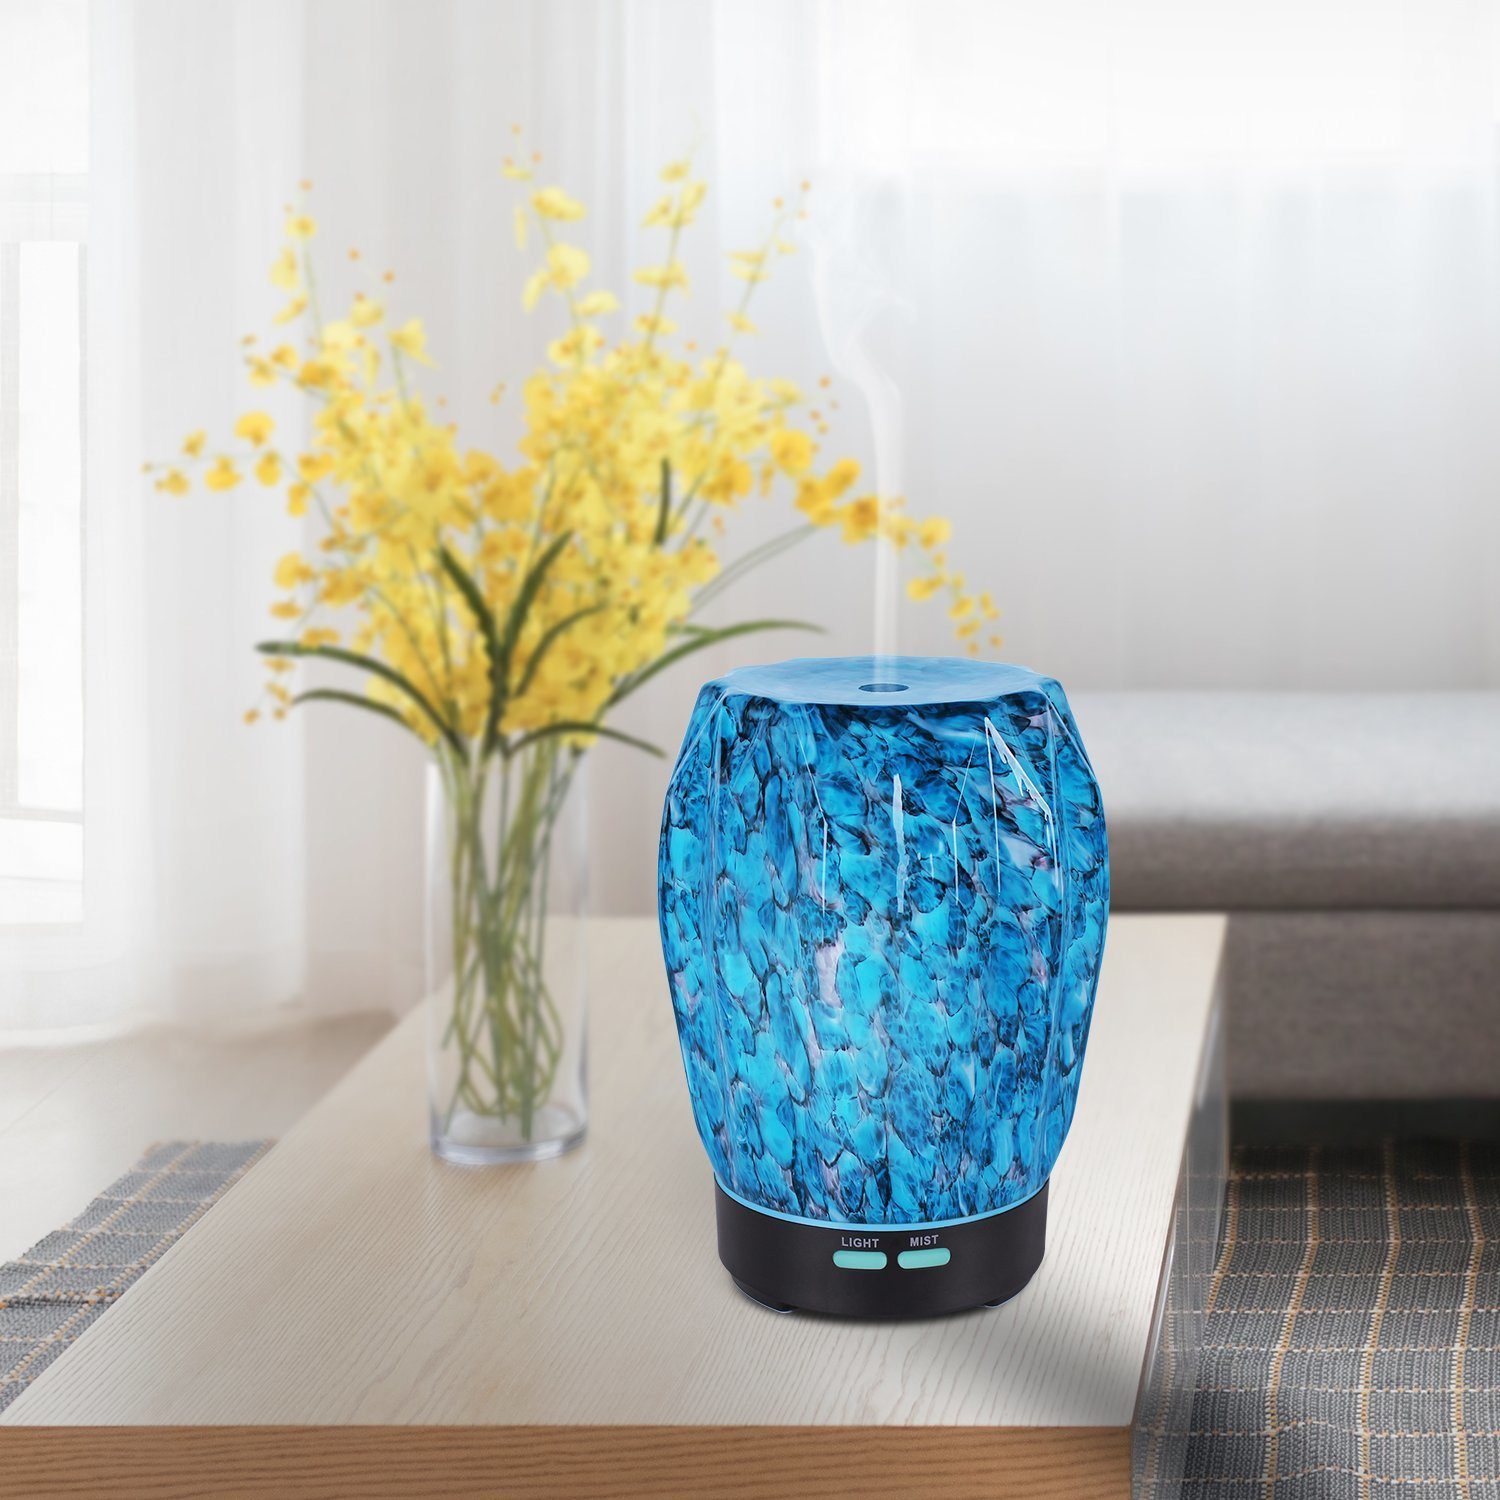 3D Creative Glass Aroma Diffuser 3D Humidifier Essential Oil Electric Glass Diffuser